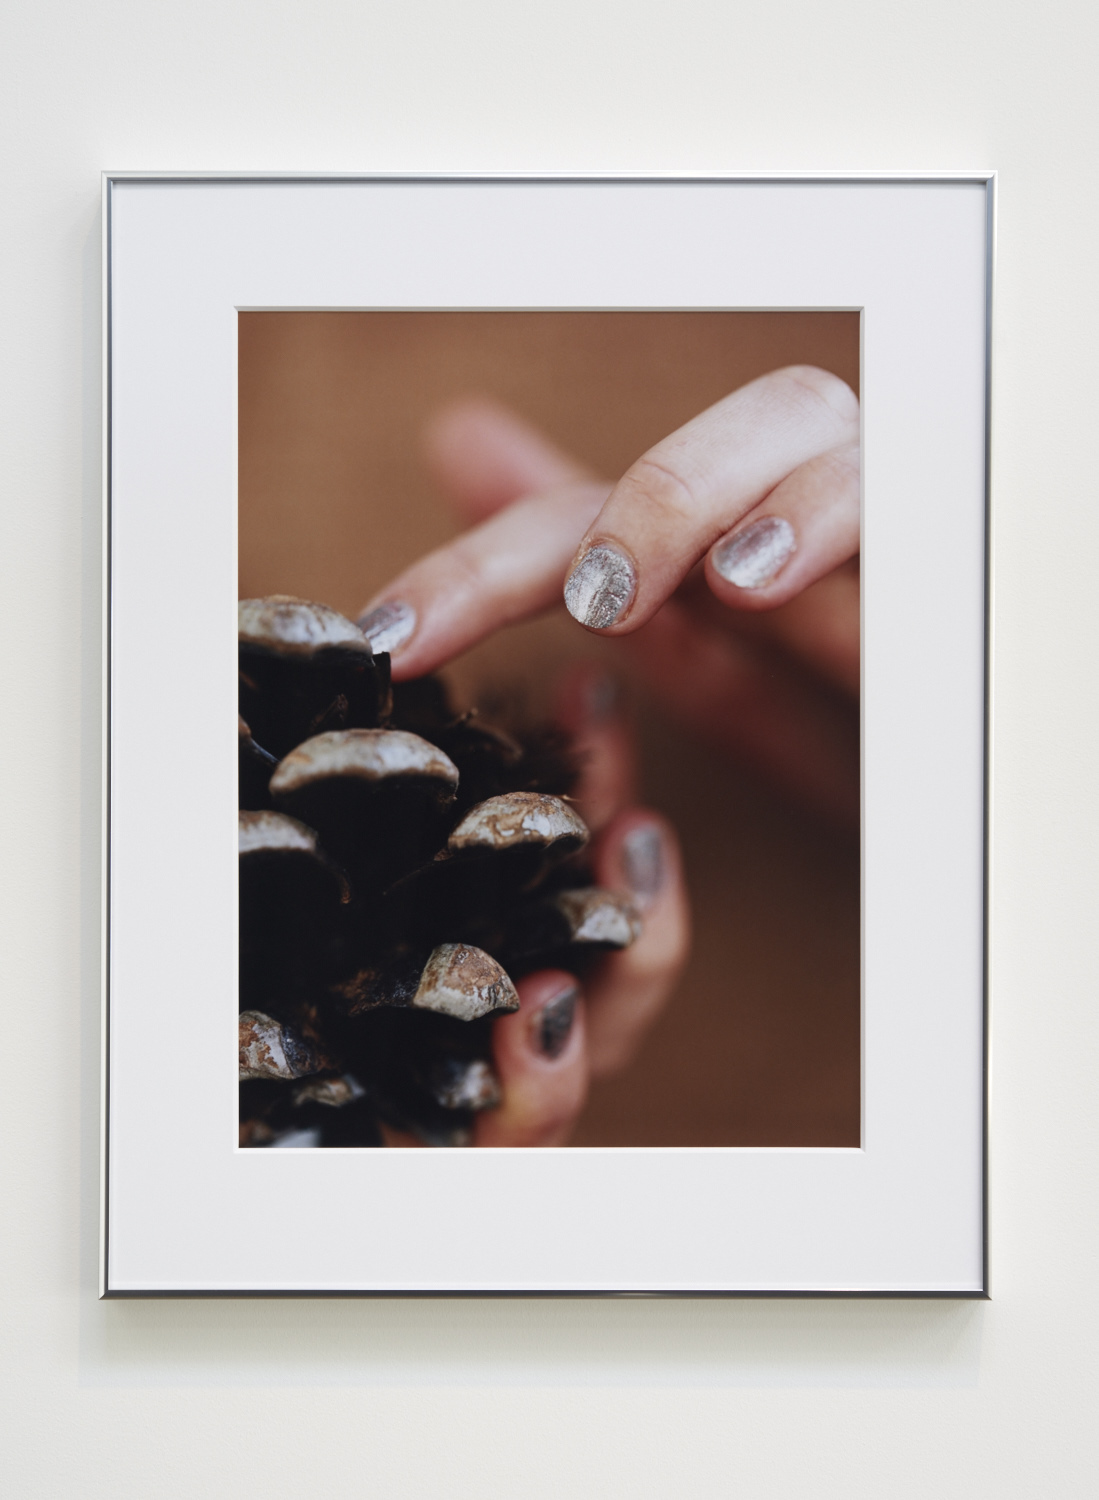 """Josephine Pryde, """"A Cone,"""" 2015. C-print. 23 ¼ x 17 ¼ inches. Edition 3/3"""